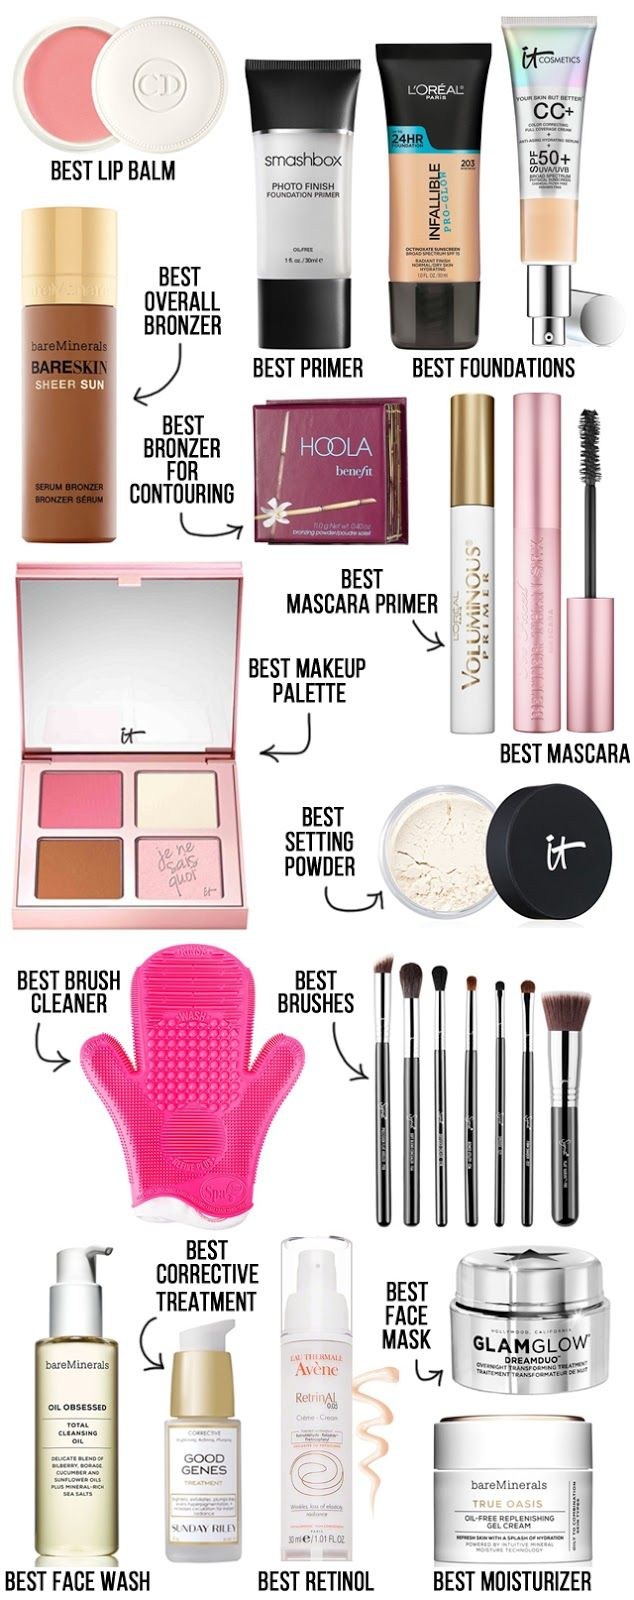 Best Buys of 2016 (Makeup, Hair, Skincare + More)